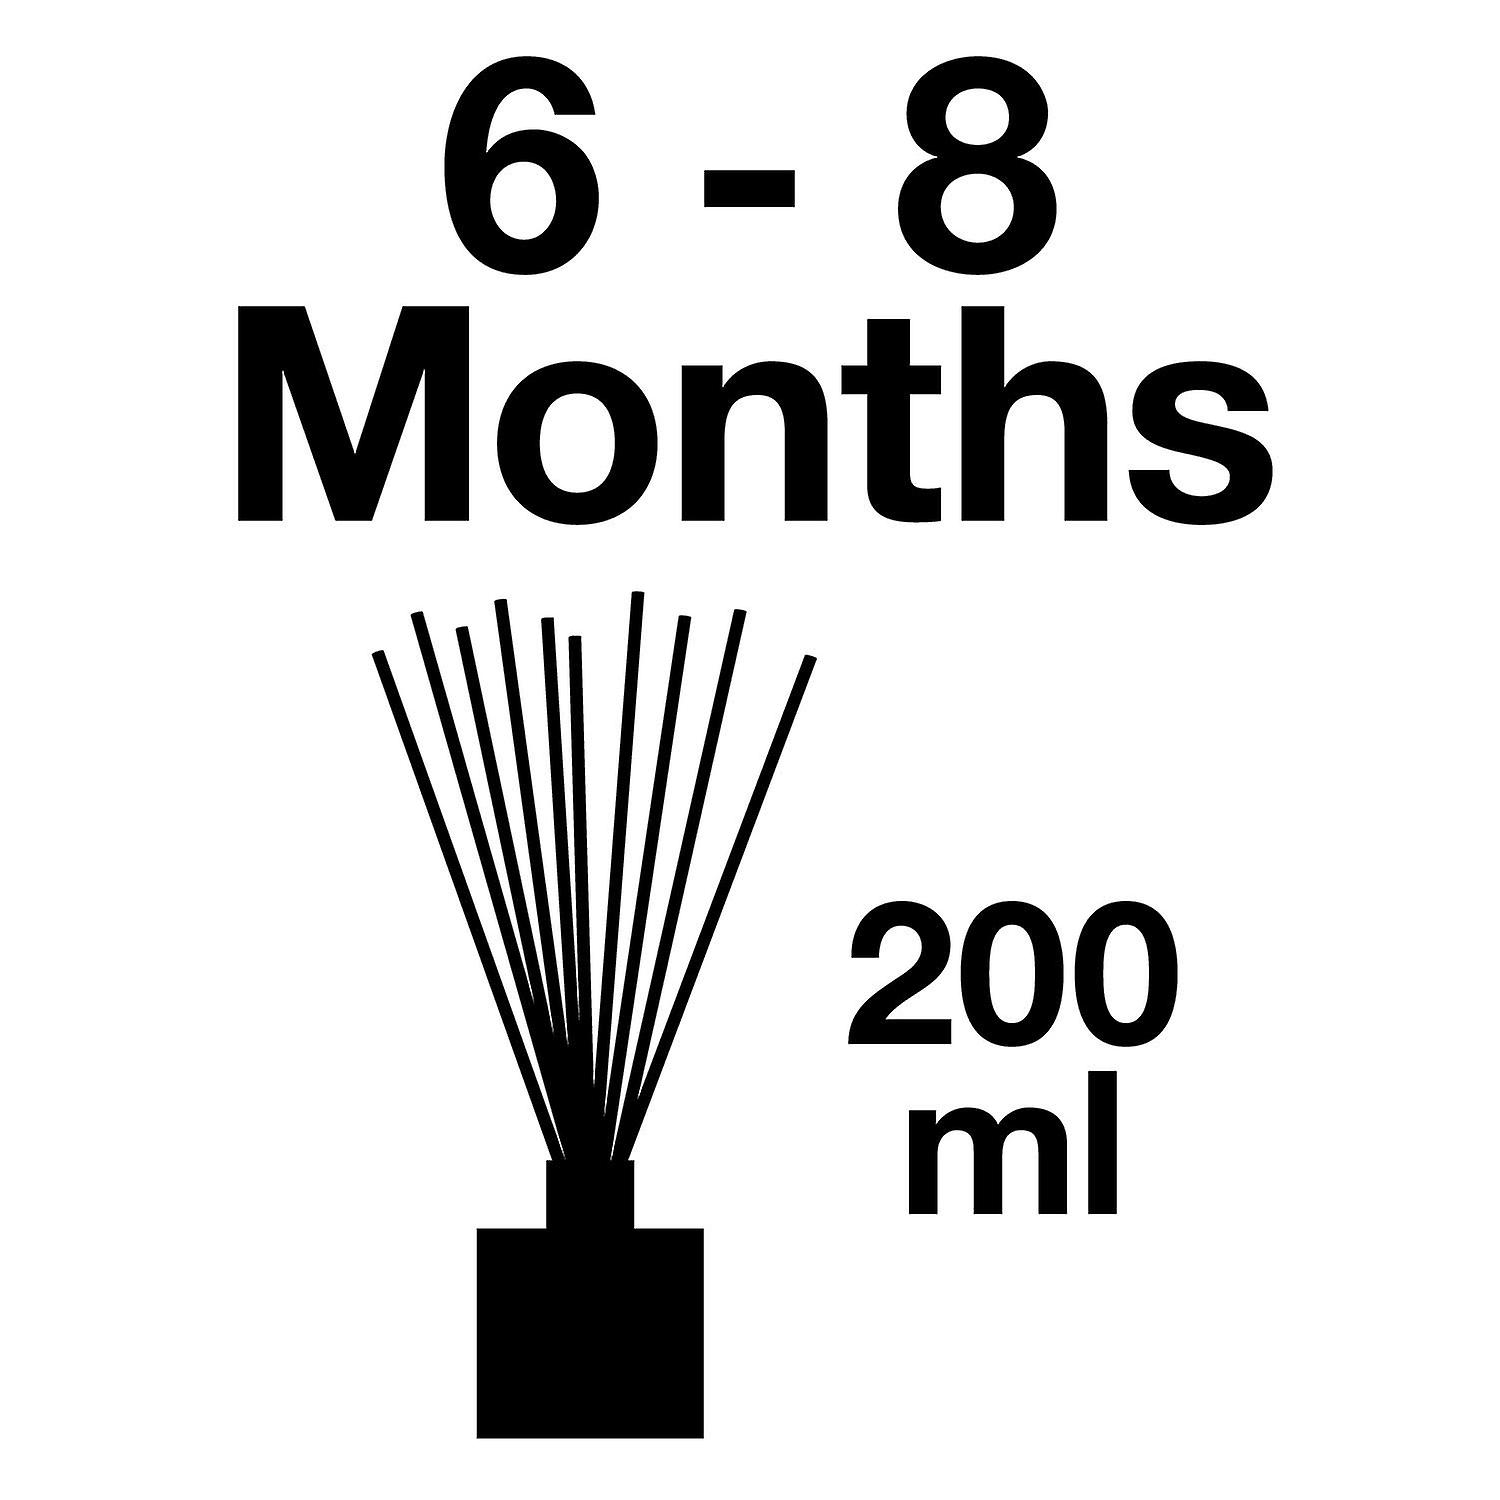 Large & Natural Reed Diffuser - Long-lasting & Healthy - Beautiful Perfumes that Compliment You - Fragrances for 6 - 8 months (200 ml) - by PAIRFUM - Perfume: Trail of White Petals - with Black Reeds